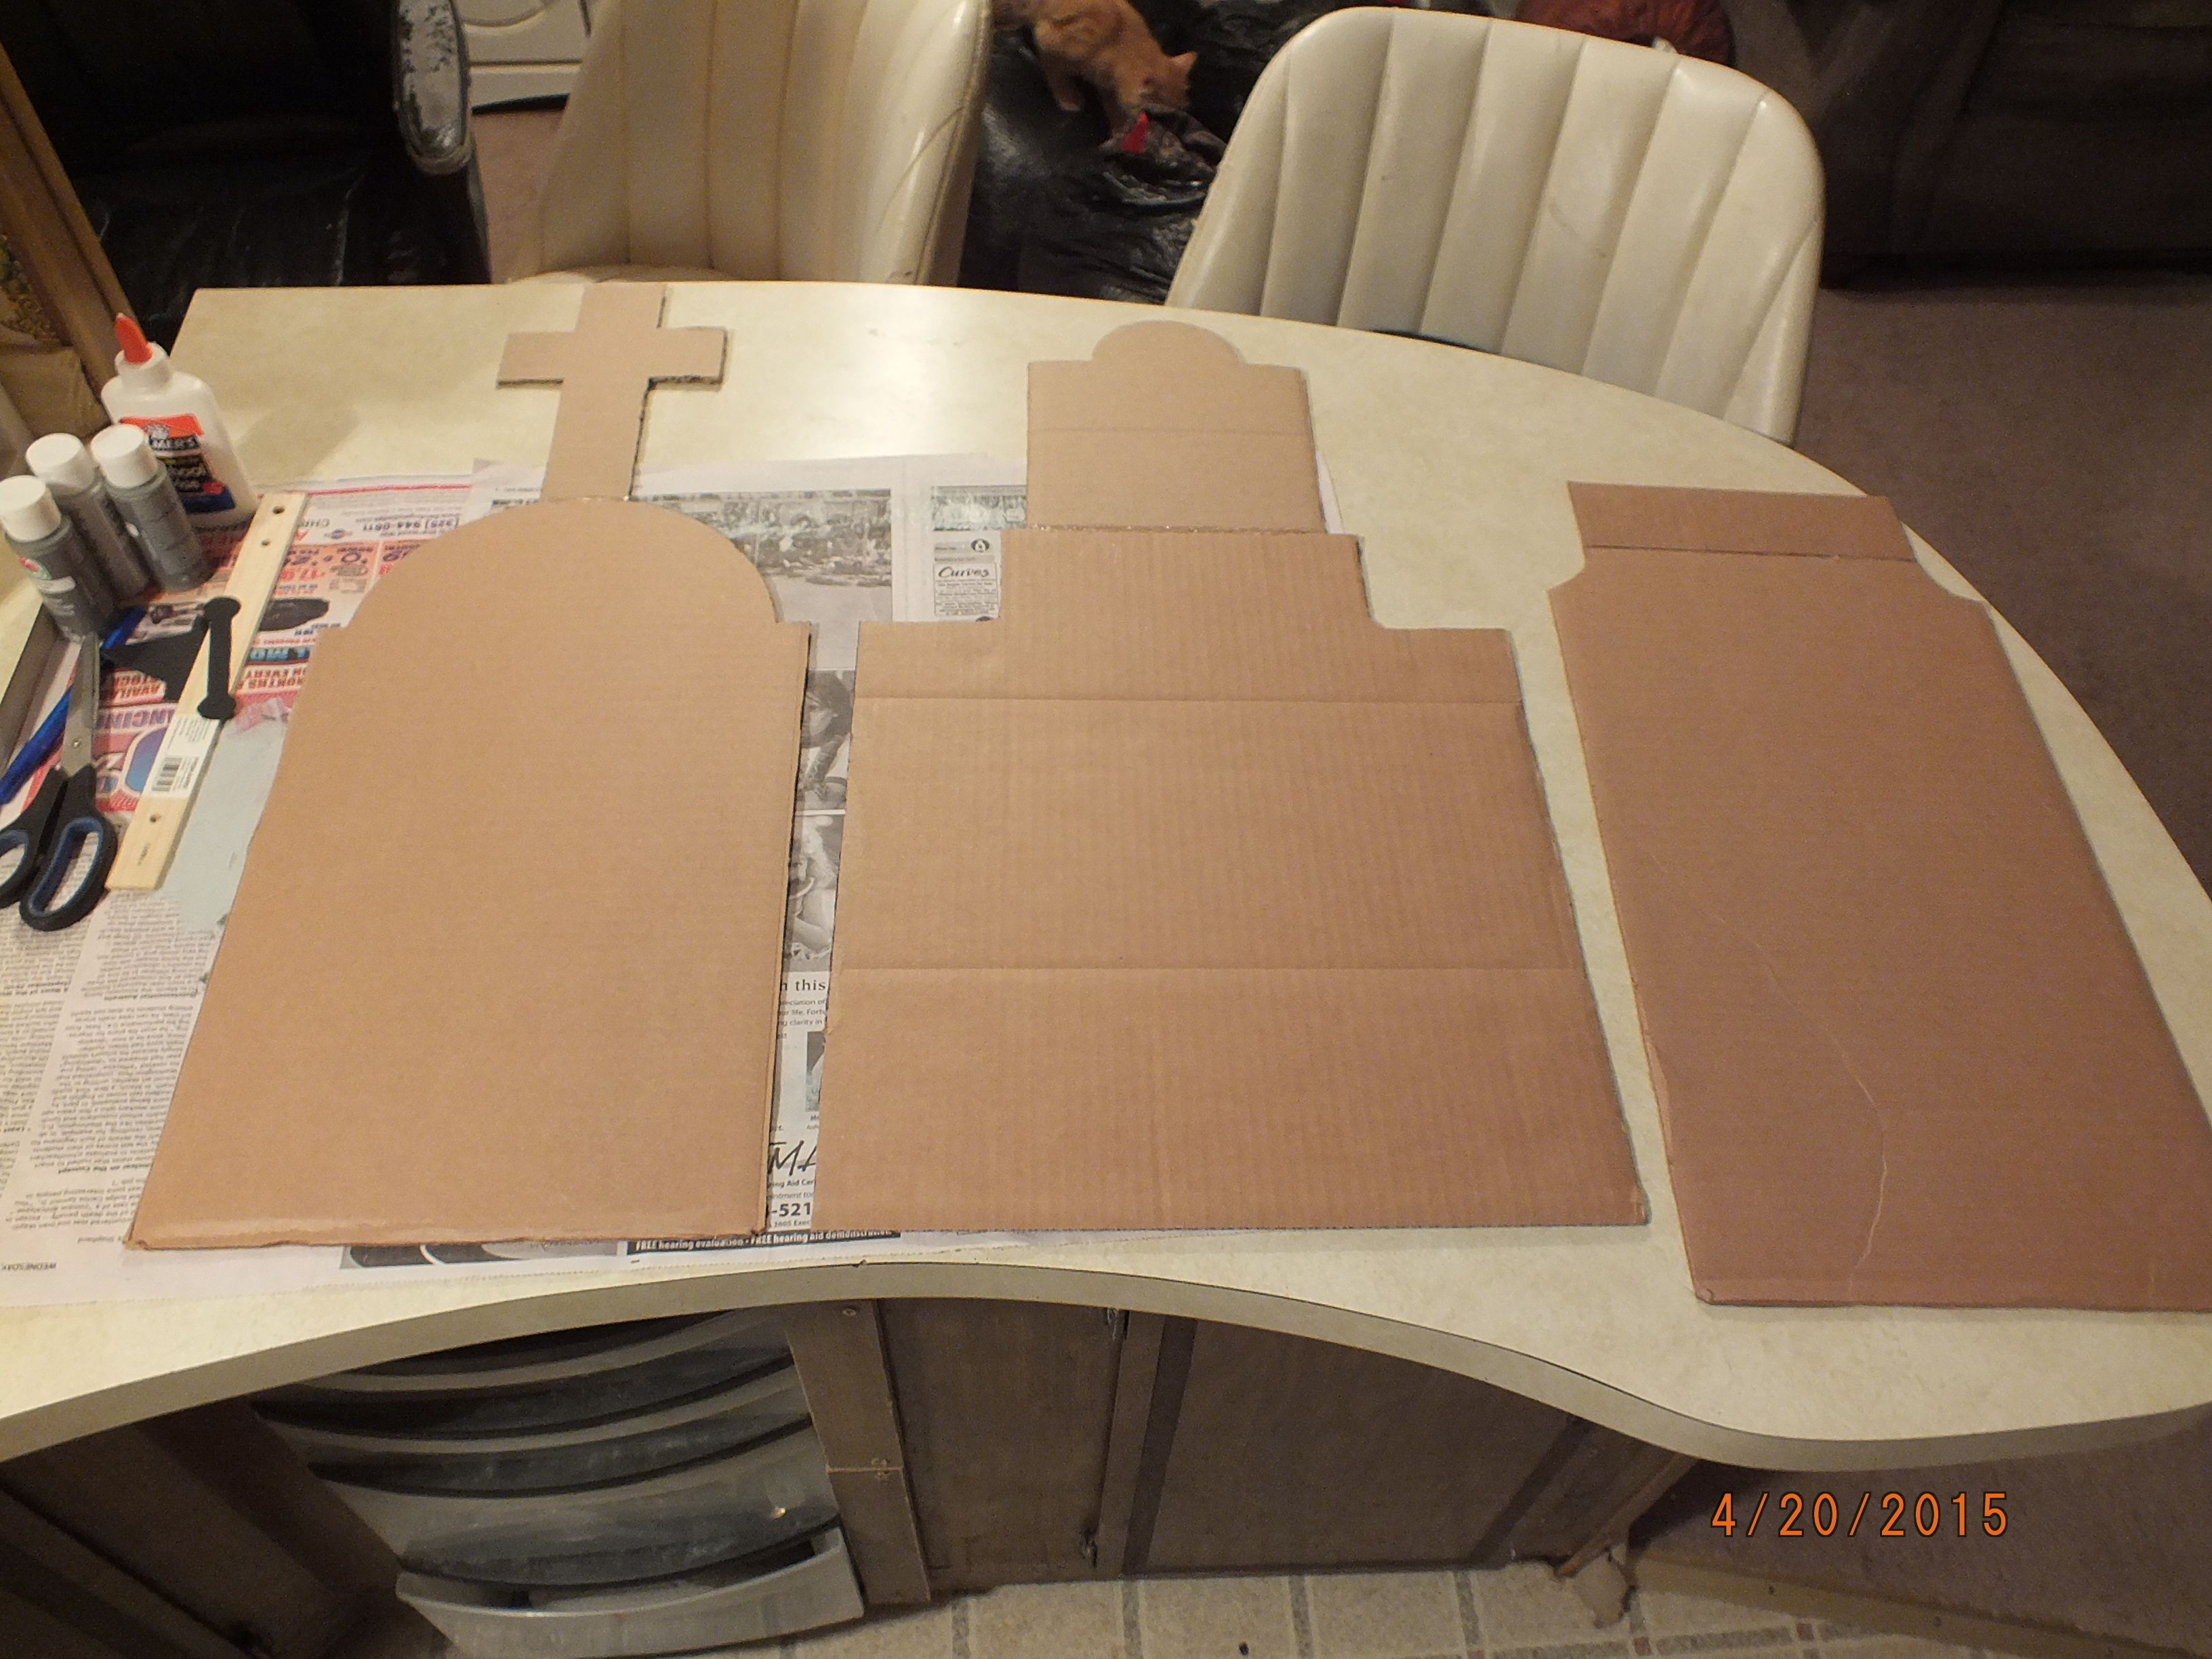 Tombstone Templates Cut Out Of Cardboard Halloween Decor